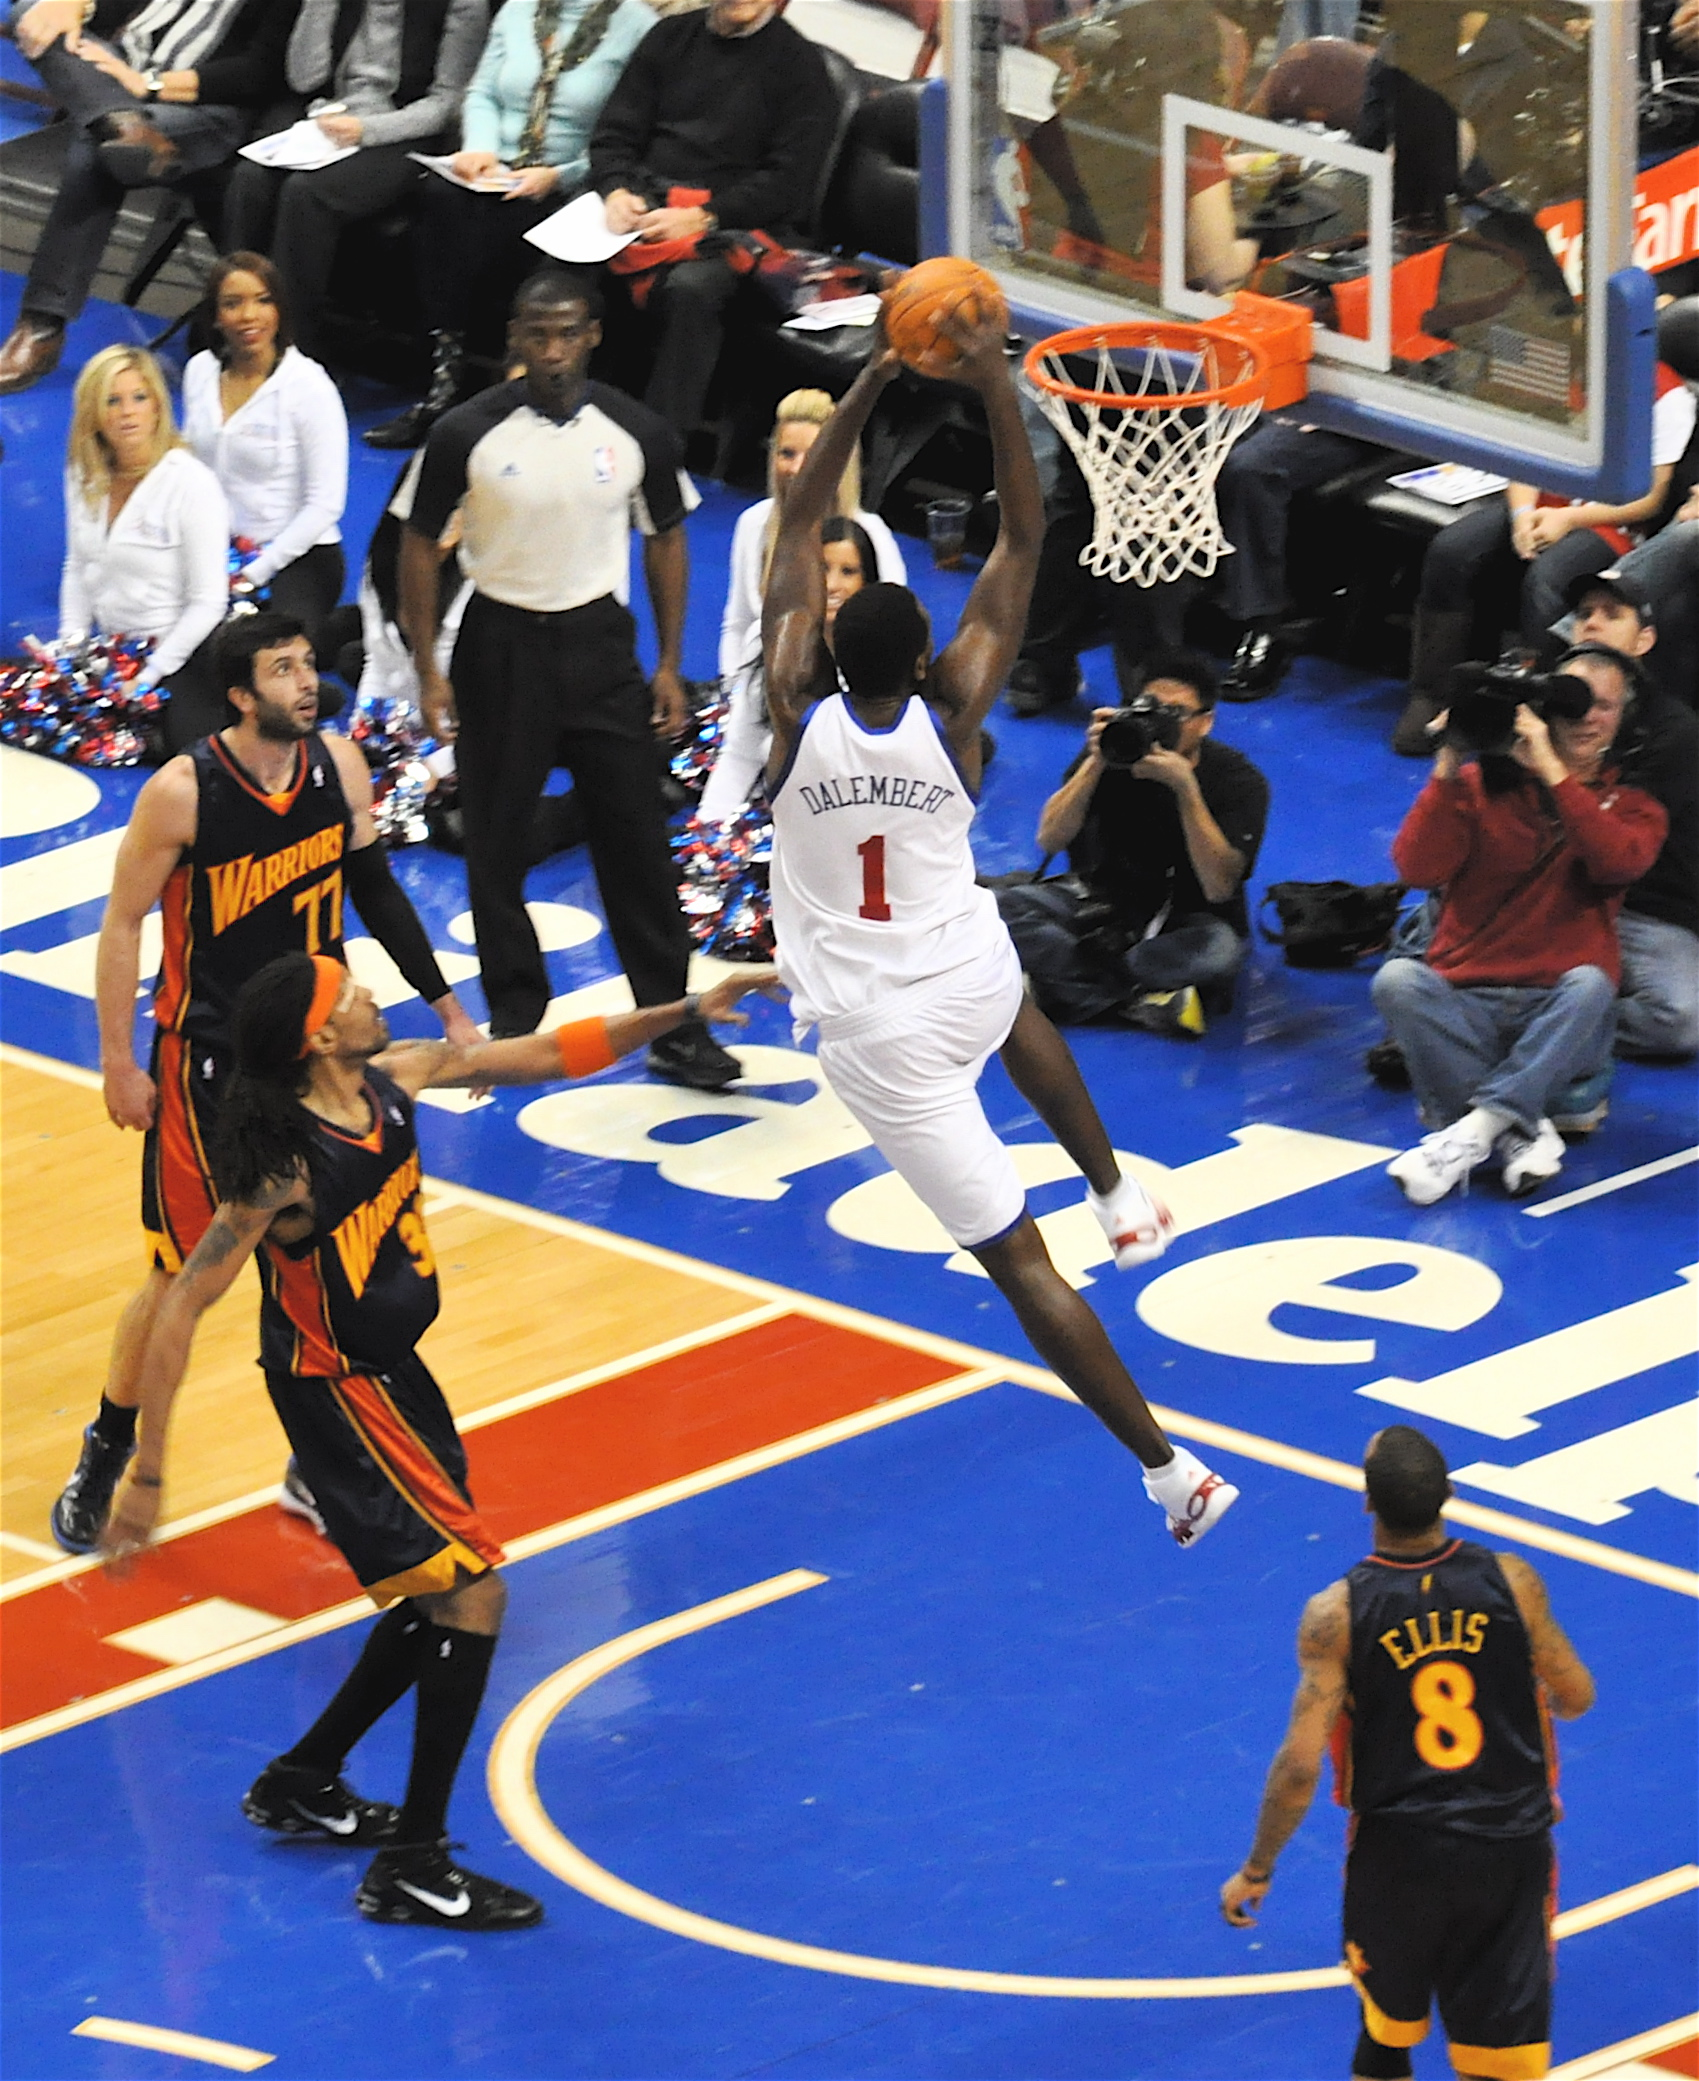 File:Samuel Dalembert and the Sixers.jpg - Wikimedia Commons